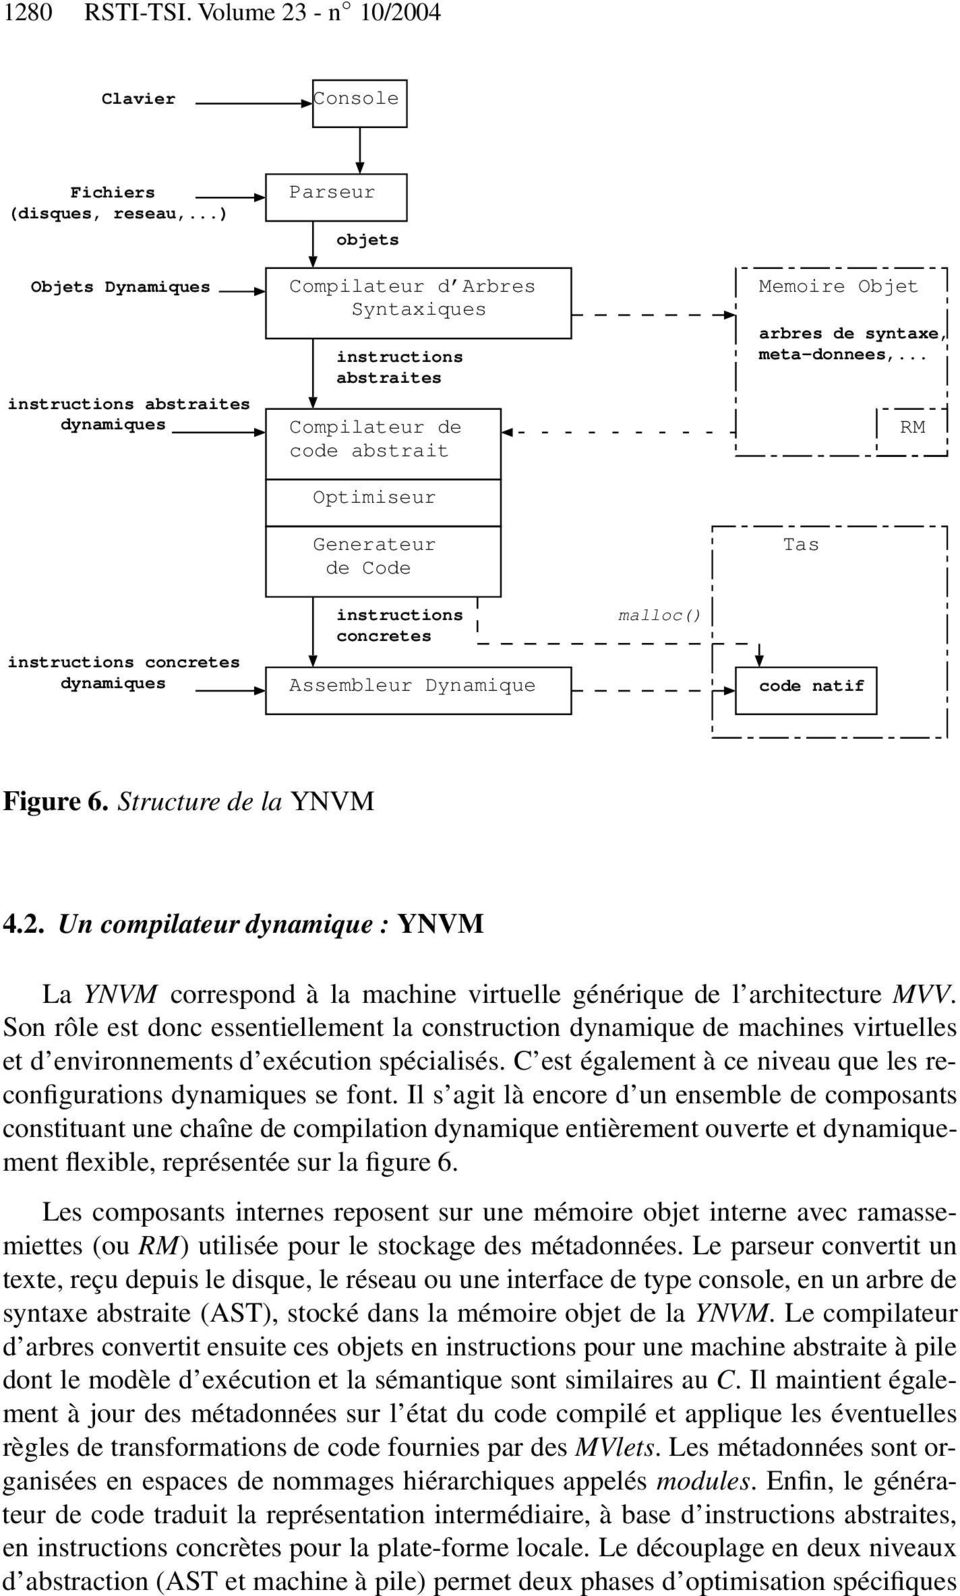 meta-donnees,... RM Optimiseur Generateur de Code Tas instructions concretes dynamiques instructions concretes Assembleur Dynamique malloc() code natif Figure 6. Structure de la YNVM 4.2.